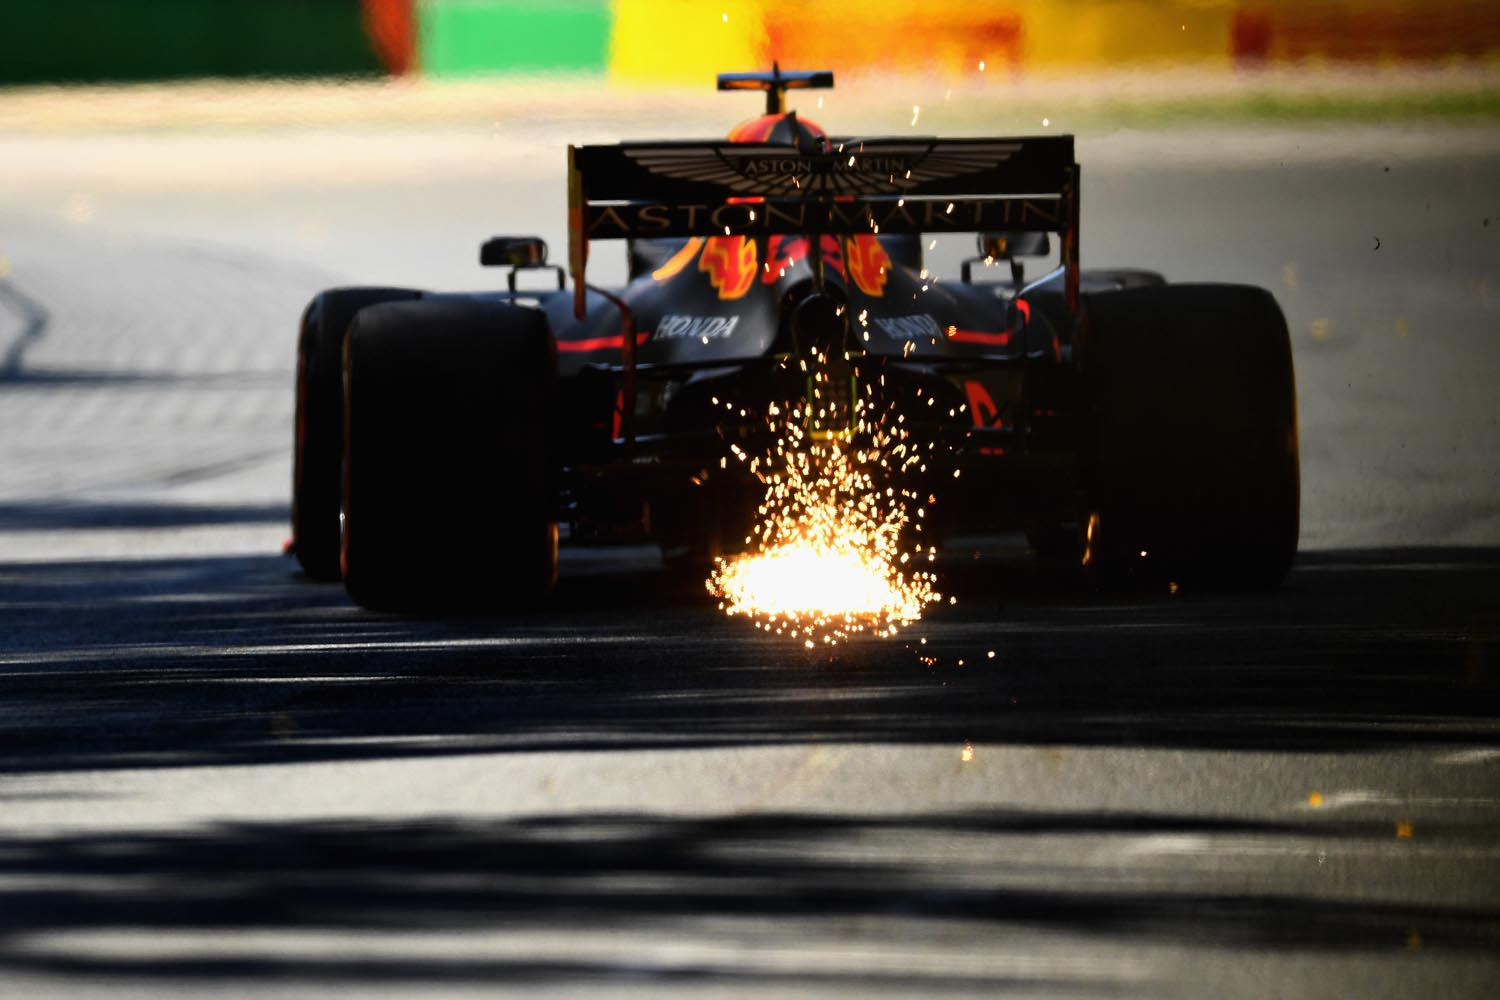 MELBOURNE, AUSTRALIA - MARCH 15: Sparks fly behind Max Verstappen of the Netherlands driving the (33) Aston Martin Red Bull Racing RB15 on track during practice for the F1 Grand Prix of Australia at Melbourne Grand Prix Circuit on March 15, 2019 in Melbourne, Australia.  (Photo by Quinn Rooney/Getty Images) // Getty Images / Red Bull Content Pool  // AP-1YQPD8R8D1W11 // Usage for editorial use only // Please go to www.redbullcontentpool.com for further information. //